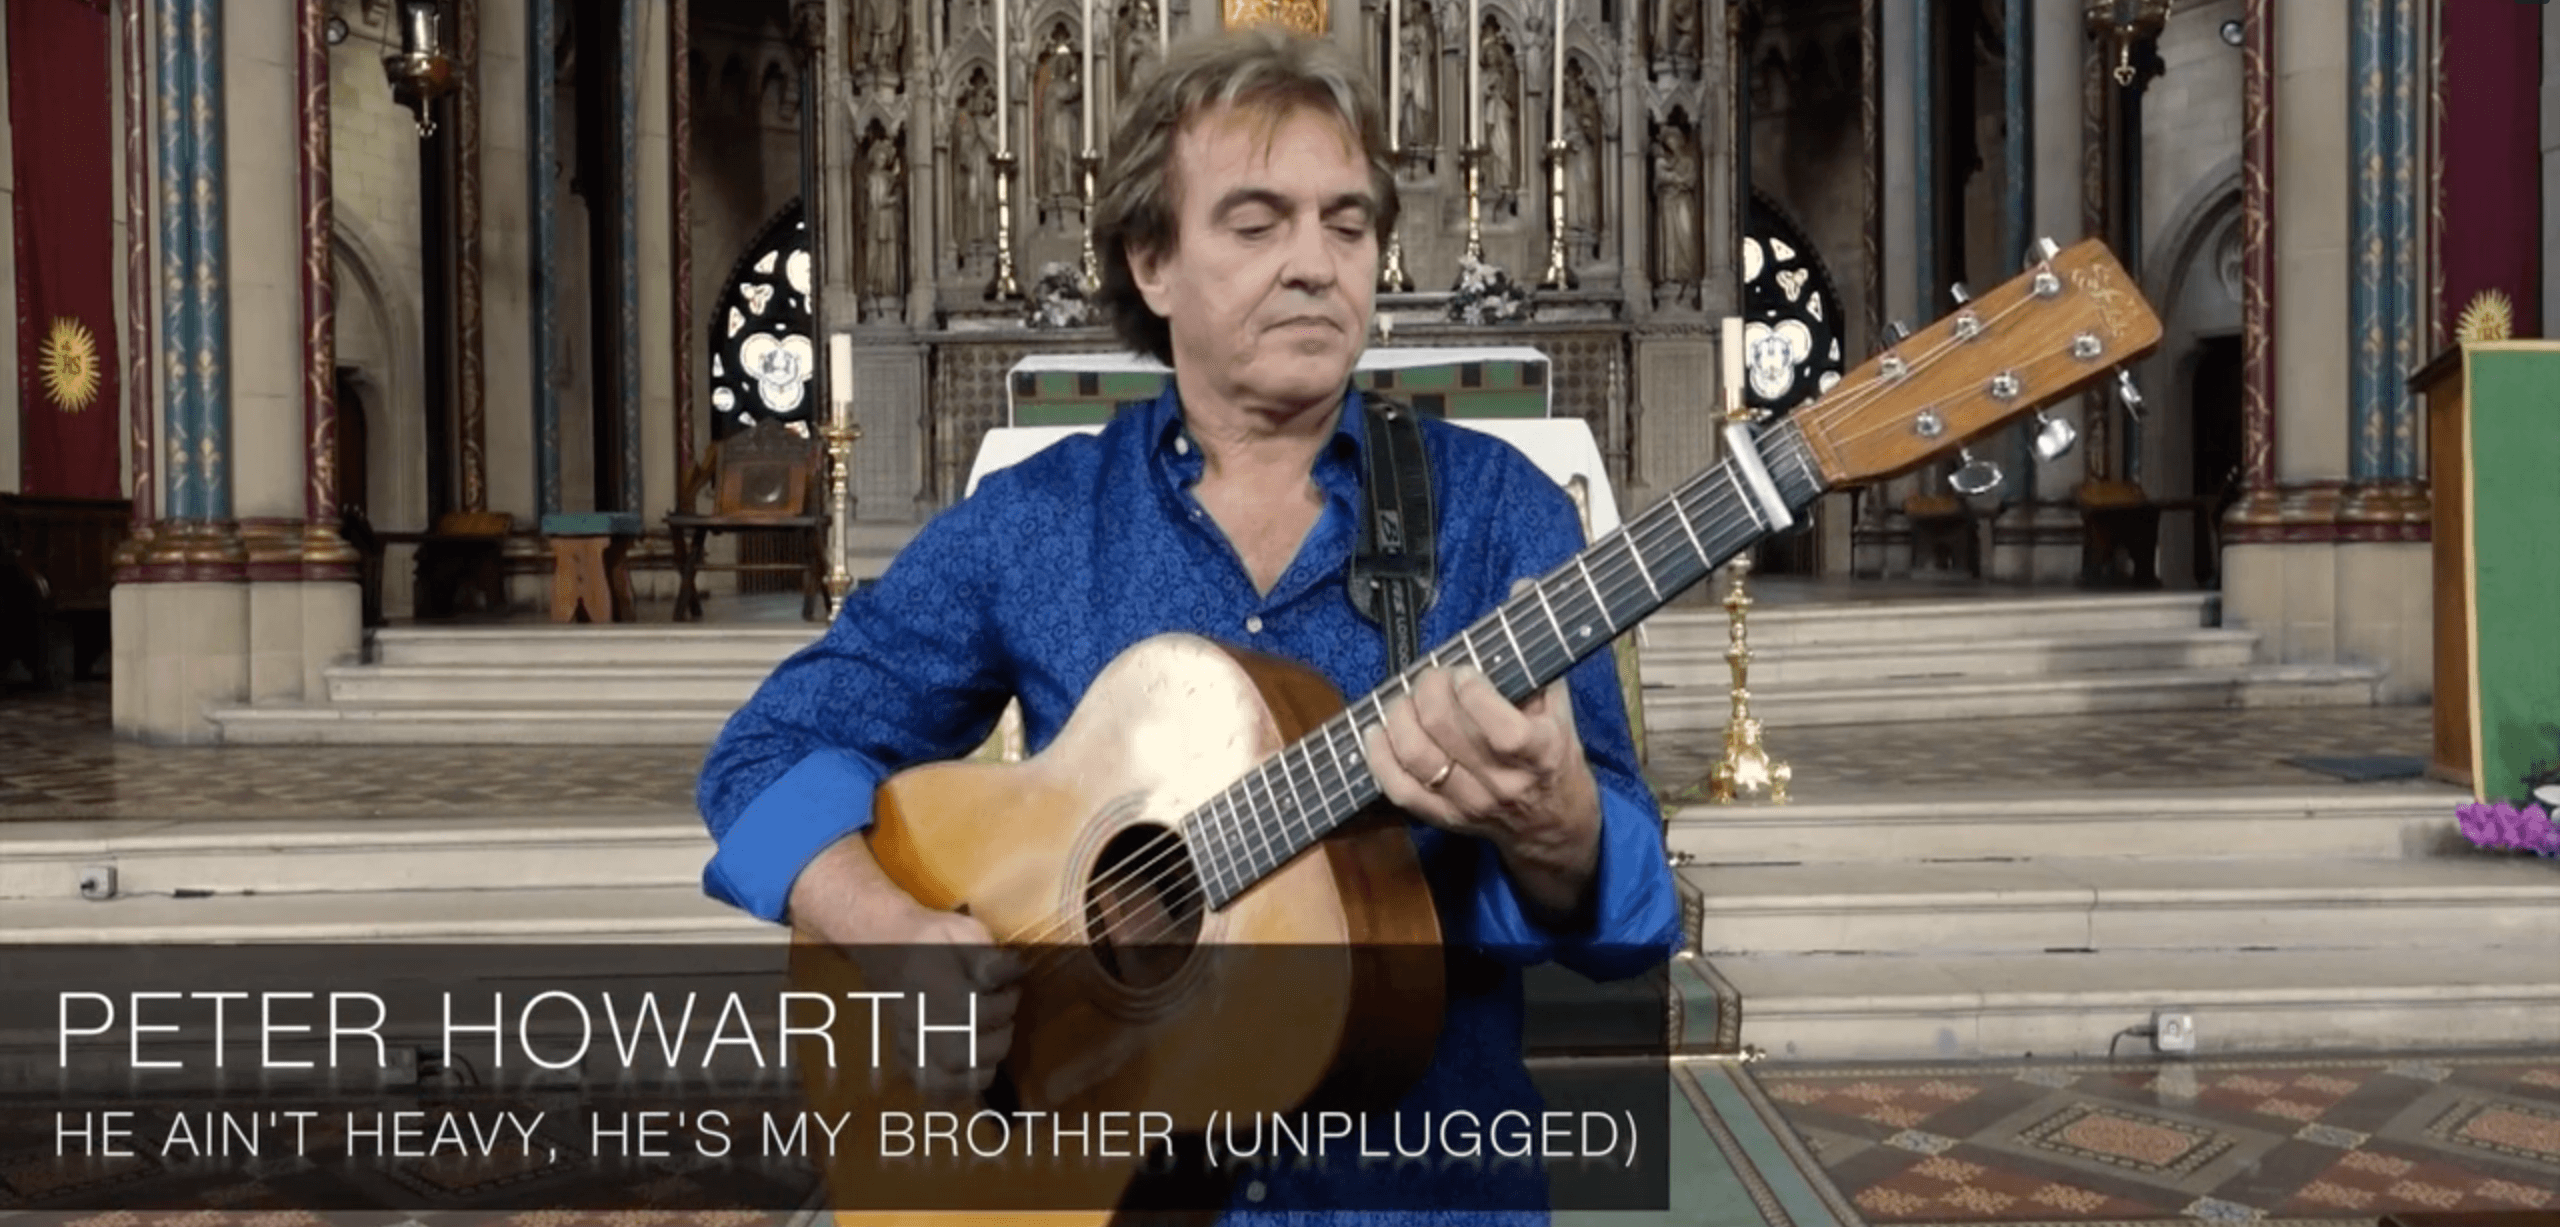 Peter Howarth – He Ain't Heavy, He's My Brother (Unplugged)